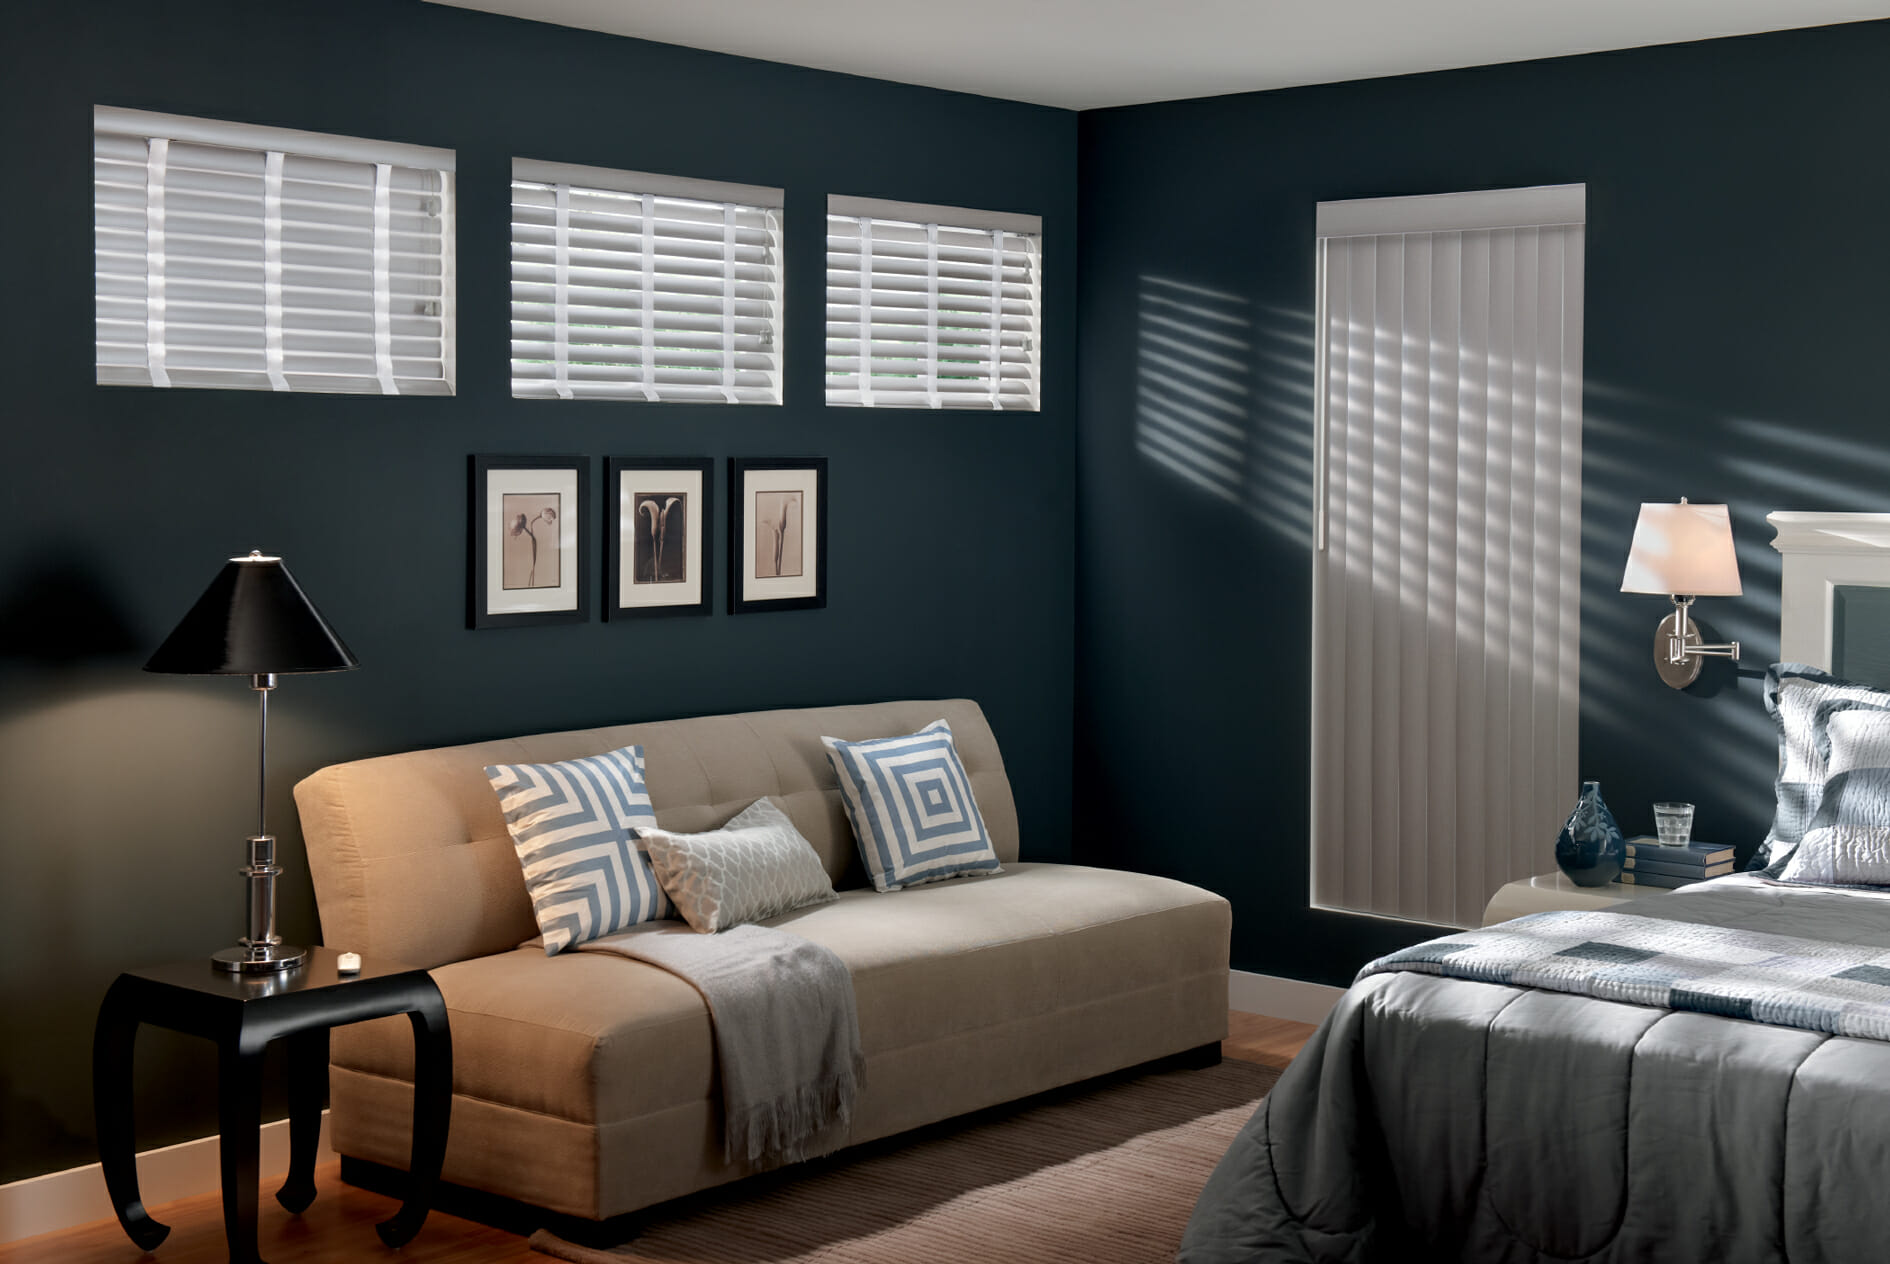 Vertical blinds 3 blind mice window coverings for Best blinds for bedroom